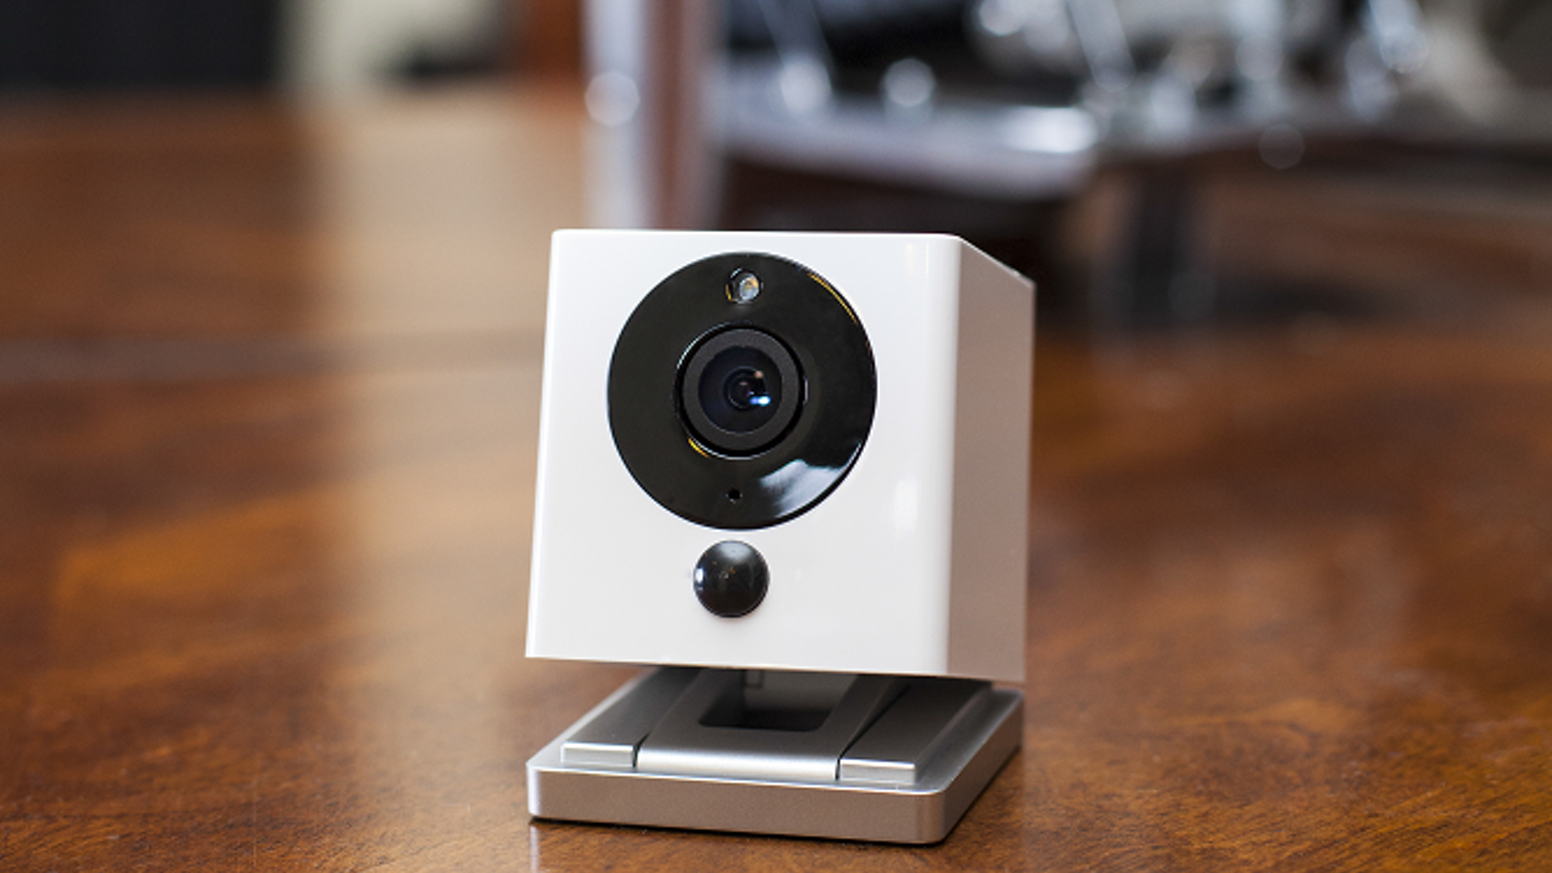 Finally, a smart home security camera with easy installation that can recognize smoke alarms and recap a day in seconds with Time Lapse